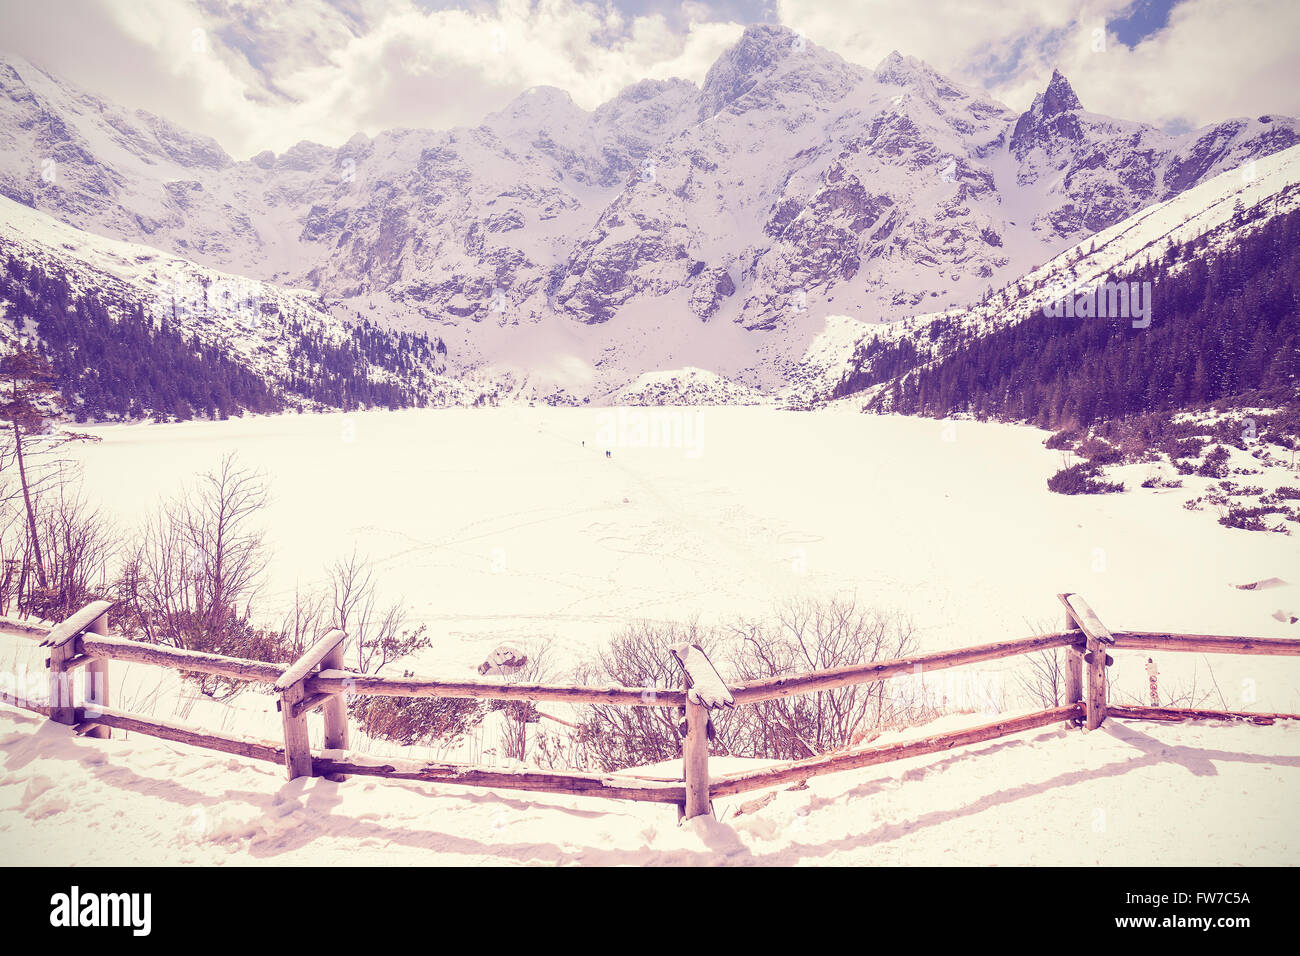 Vintage stylized frozen lake Morskie Oko in Tatra Mountains, most popular mountain lake in Poland. - Stock Image